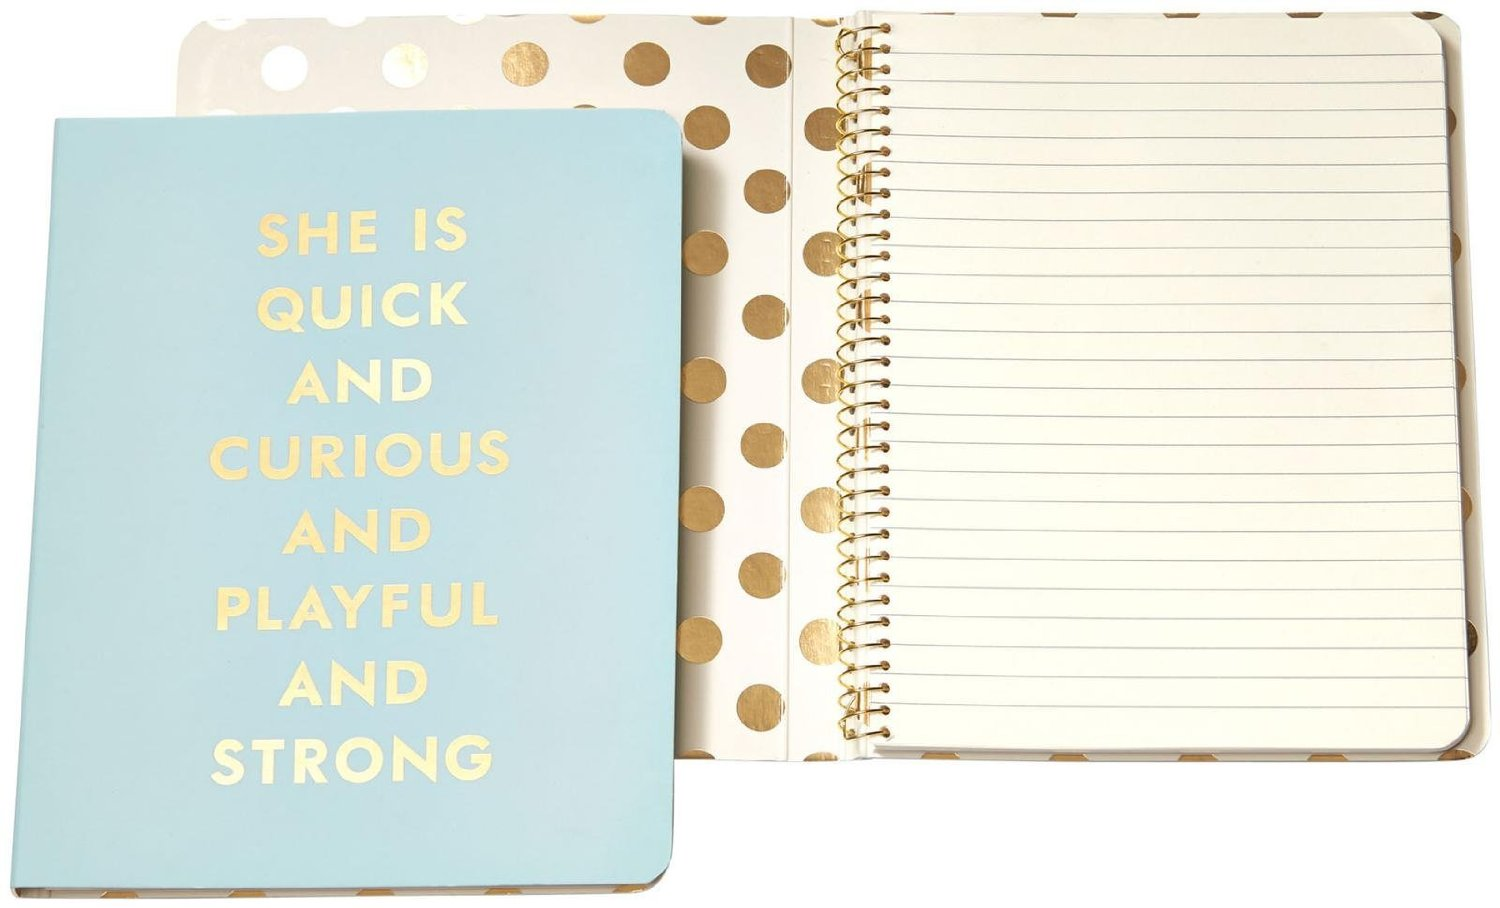 Pretty notebooks make note taking that much more fun! Download a free check list of what to bring to a conference - including this beauty!